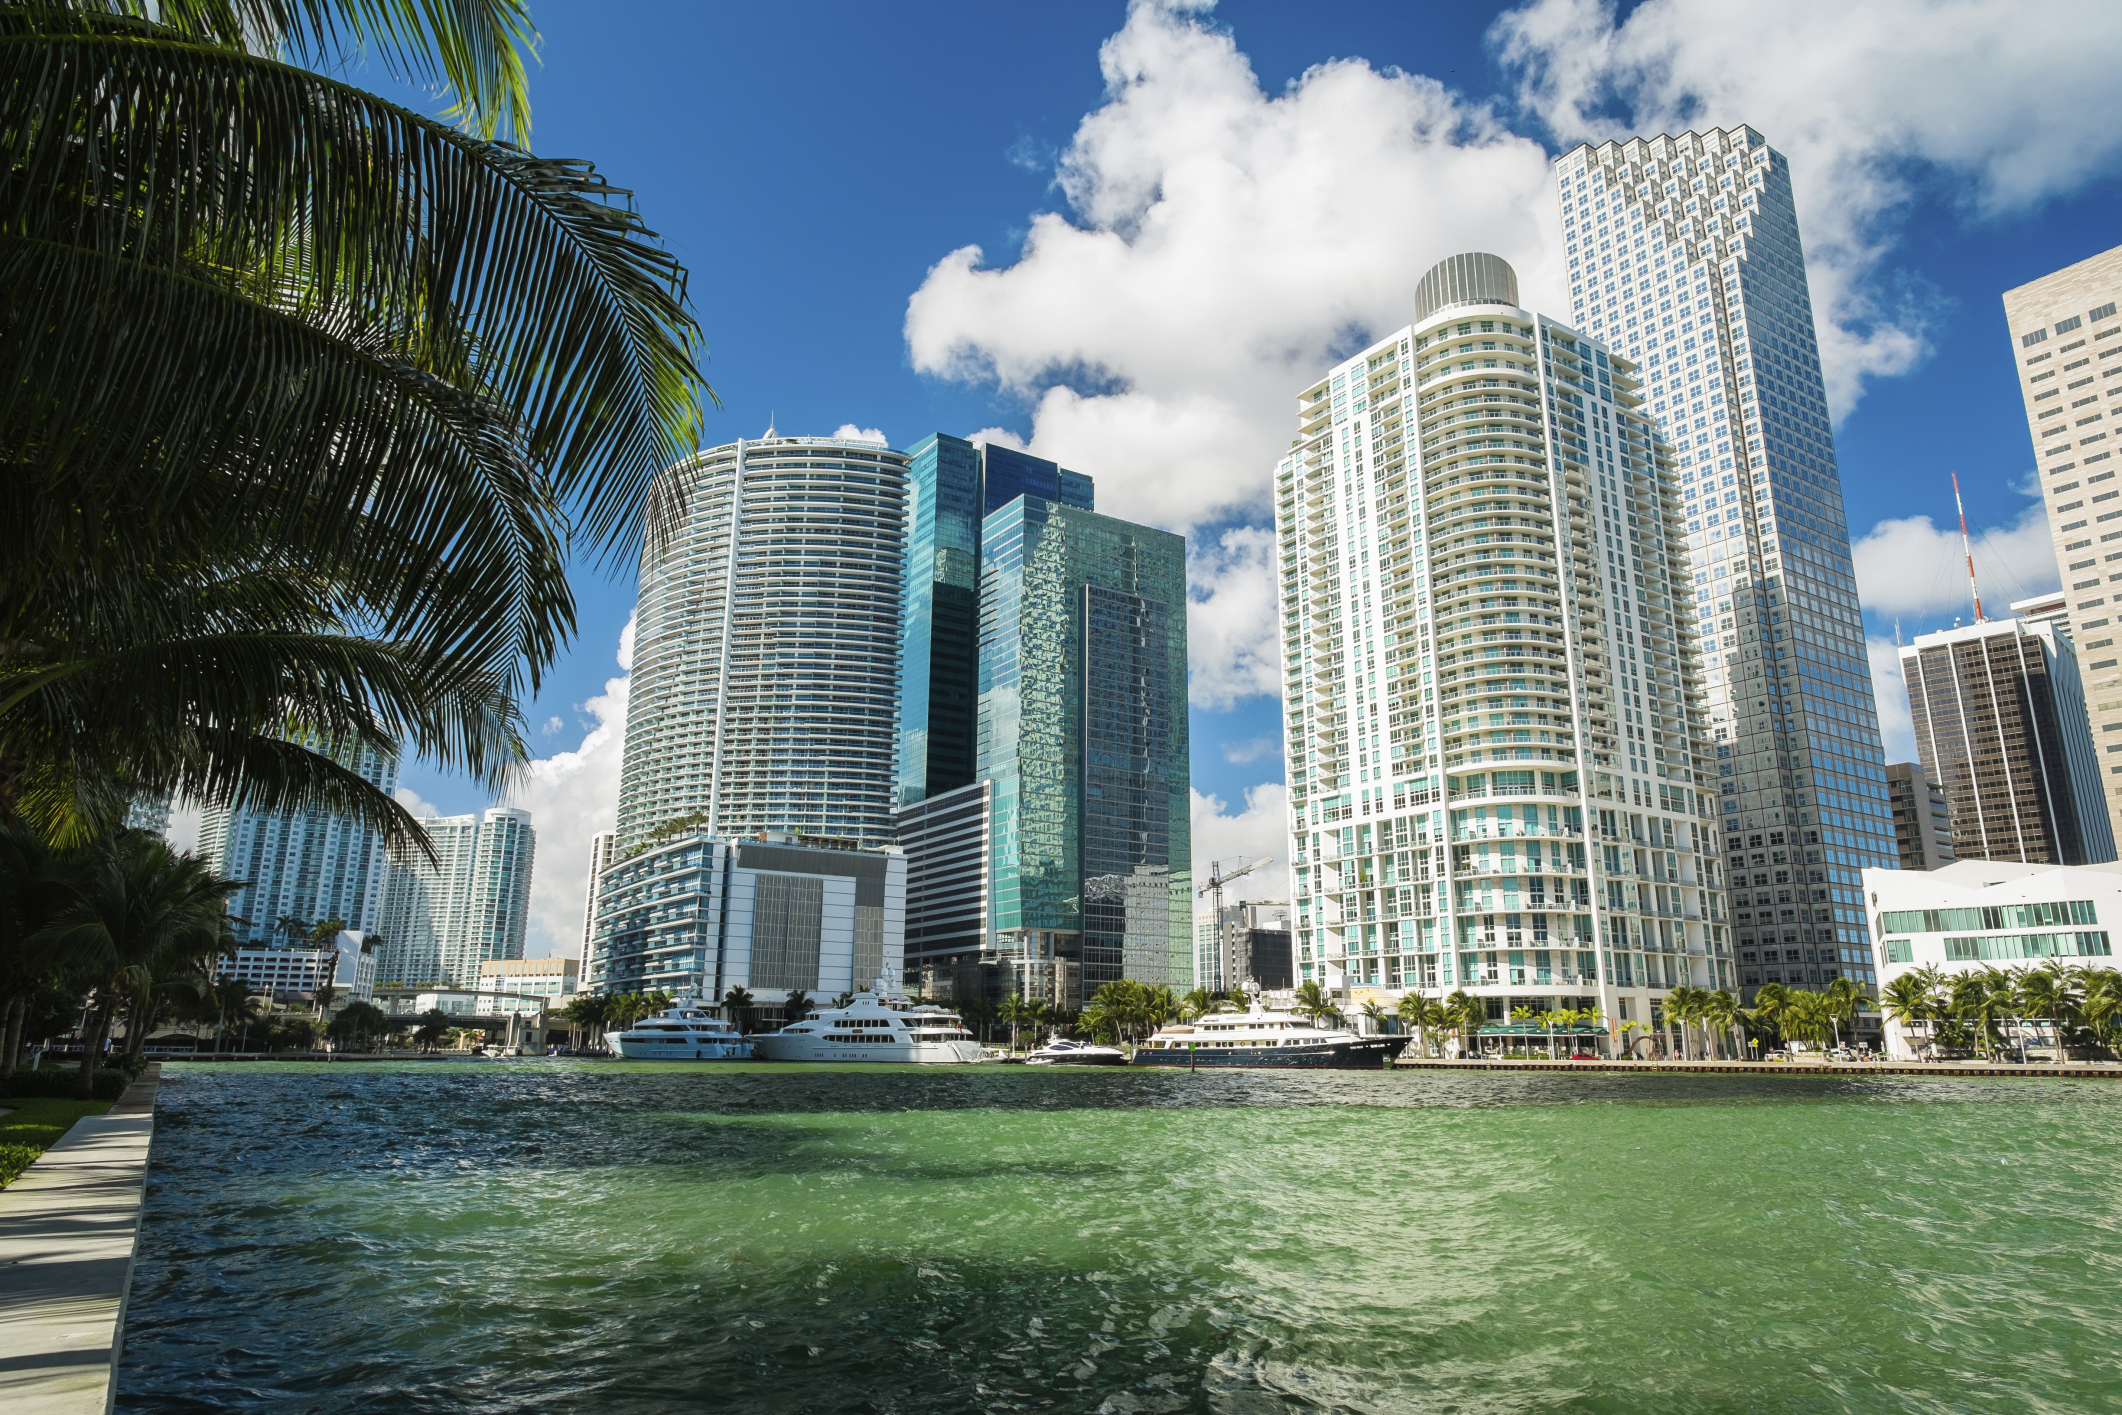 Foreign Investors From Russia and Brazil Ready To Cash Out Their Miami Investment Properties Will Benefit Even More From Home Staging